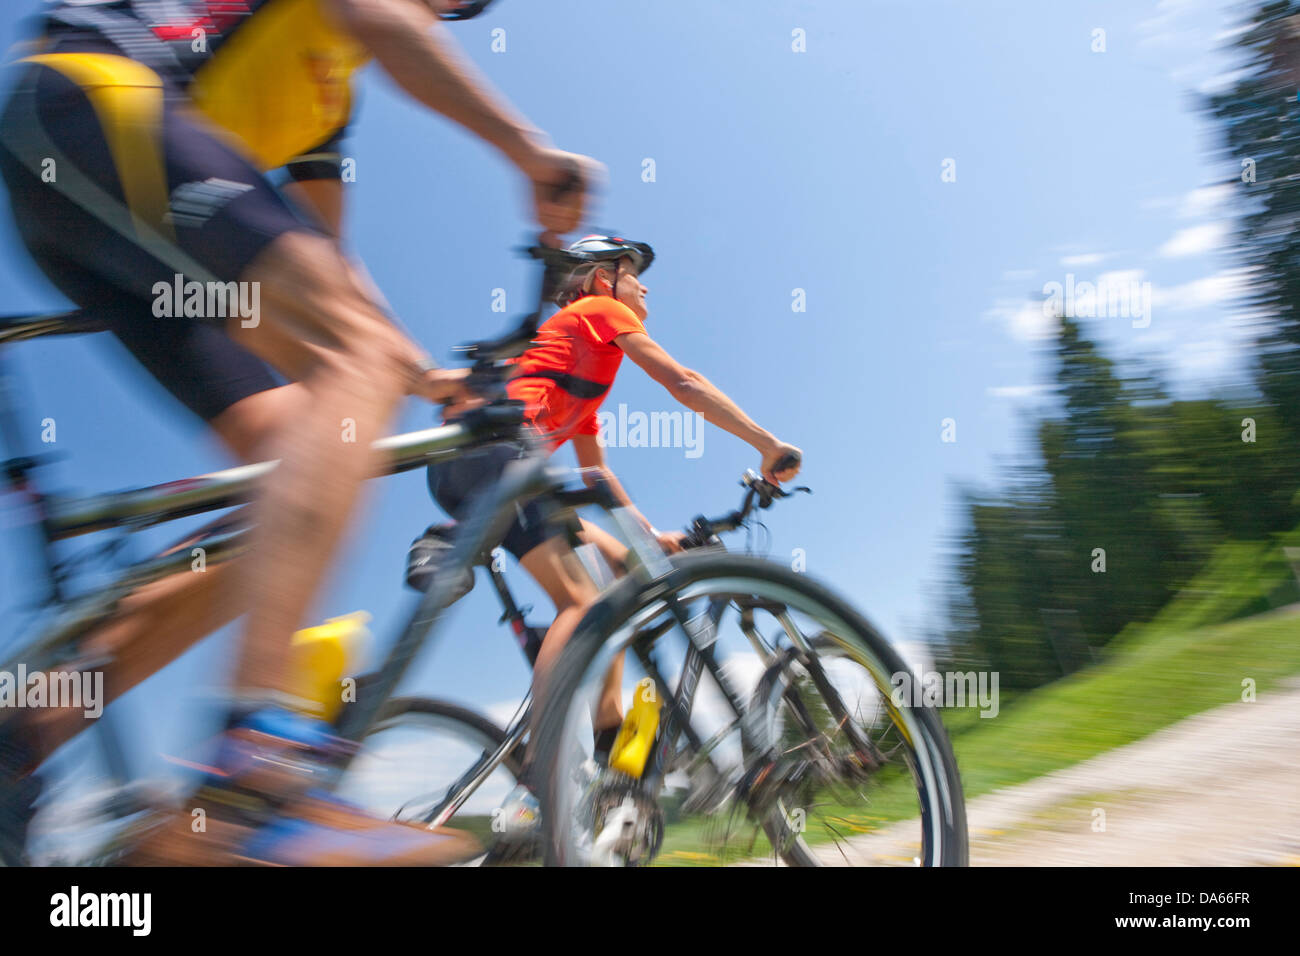 Bicycle tour, mountain bikes, Parc vaudoise jurassienne, Val de Joux, bicycle, bicycles, bike, riding a bicycle, - Stock Image